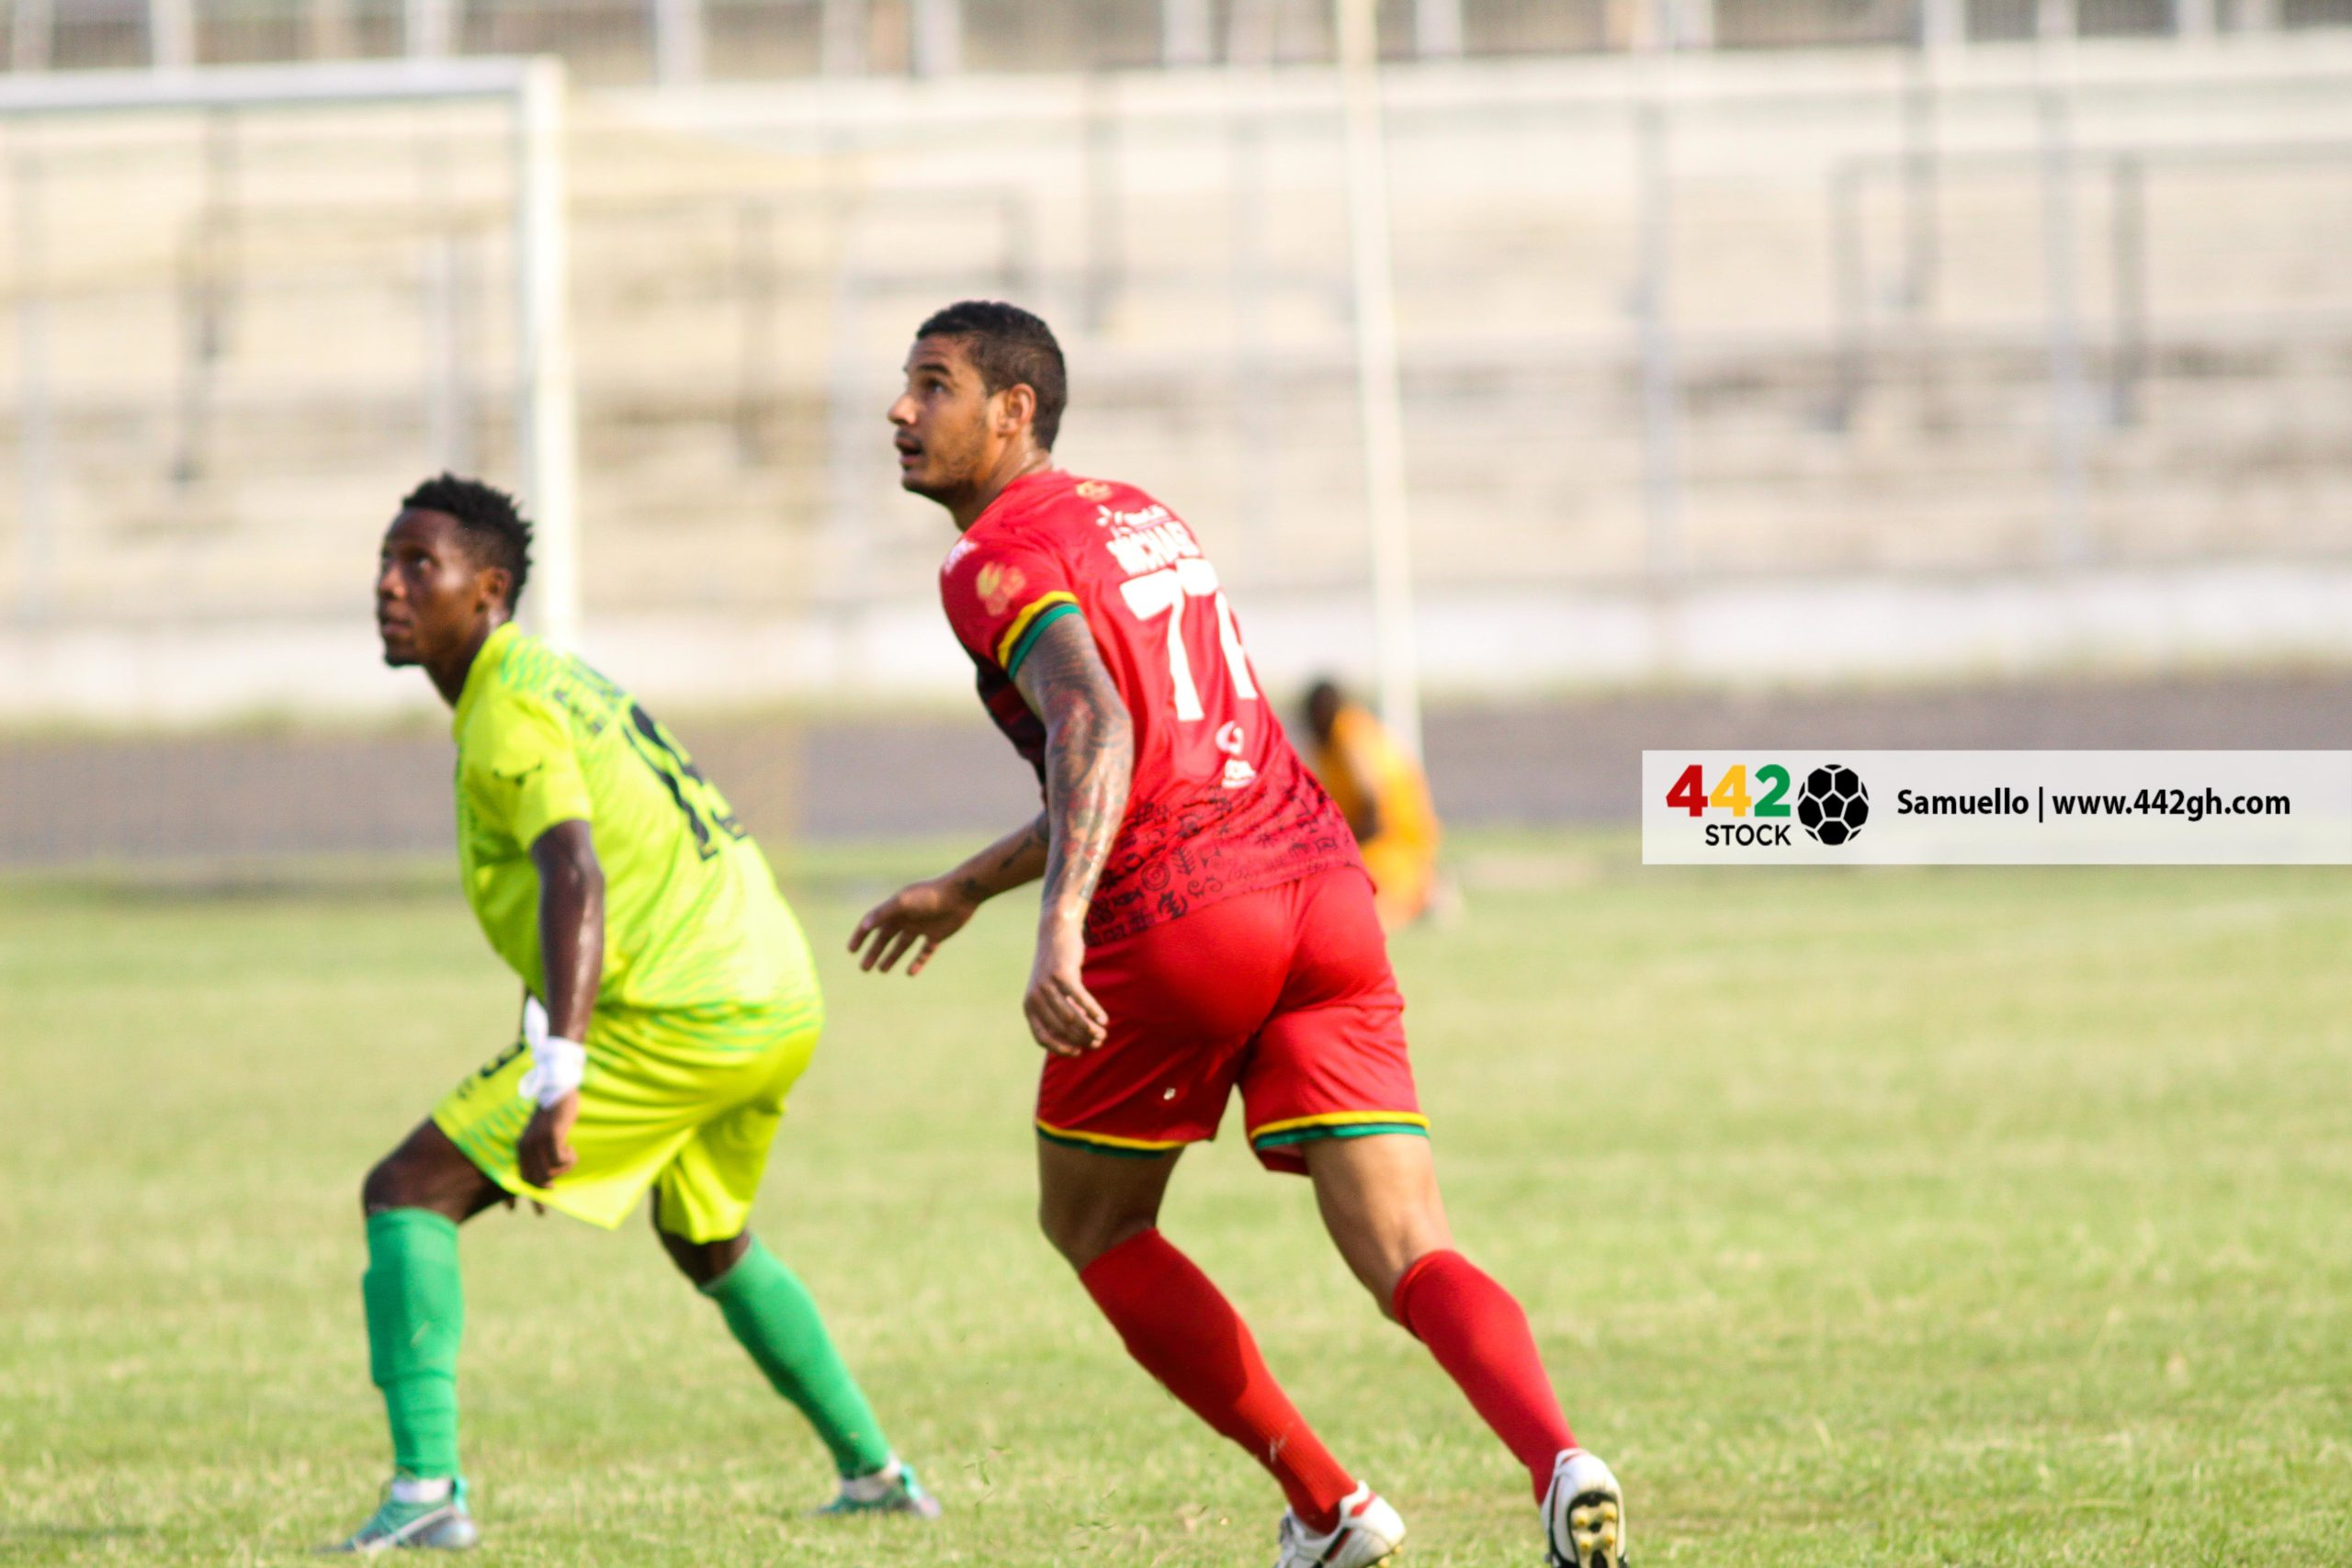 IMG 7456 scaled - PICTURE SPECIAL: Michael Vinicius' First Appearance In A Kotoko Shirt Against Bechem United